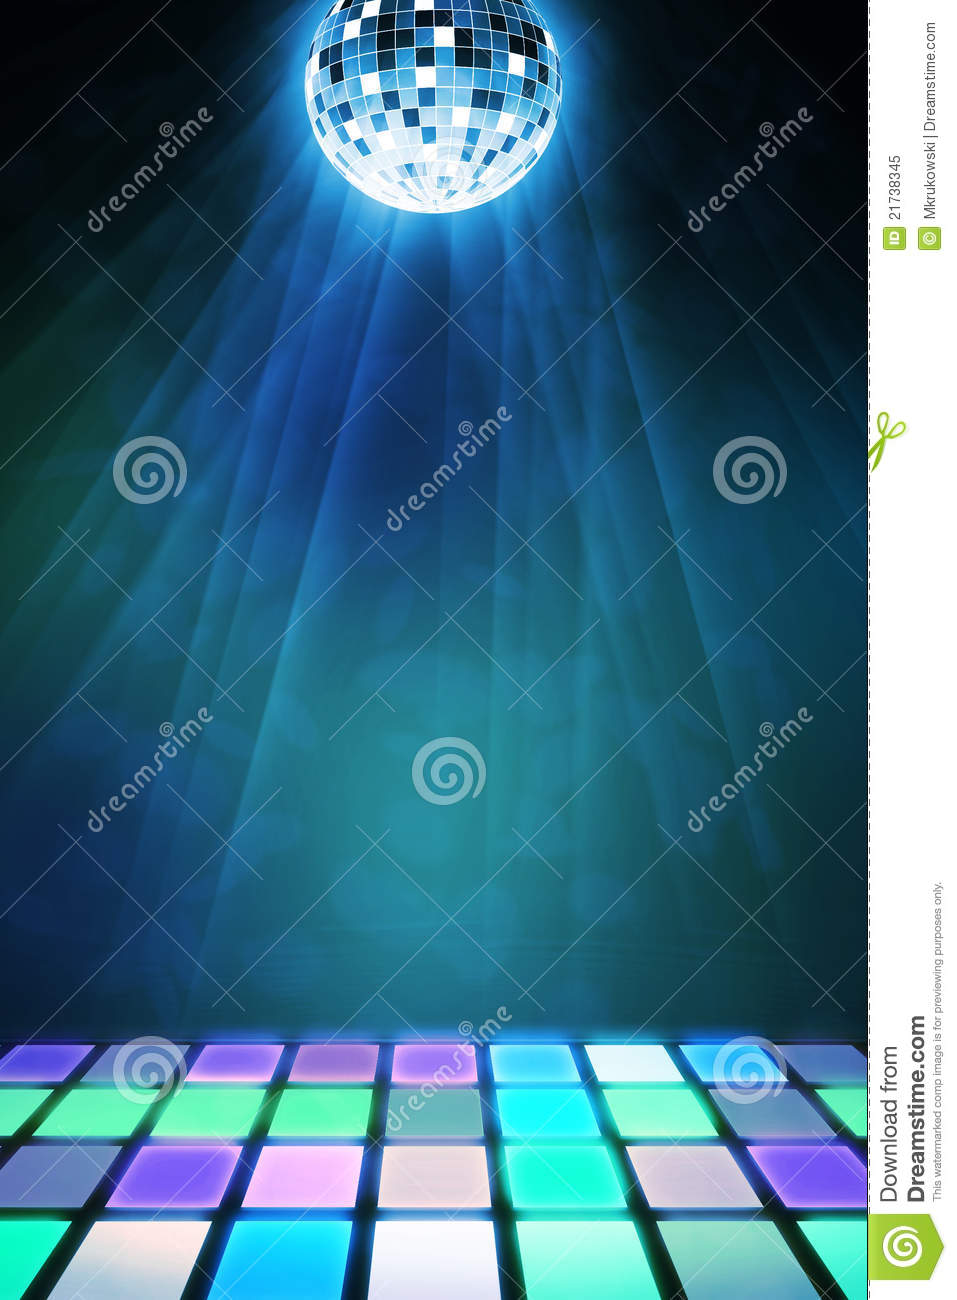 3d Colour Wallpaper Free Download Dancefloor Background Royalty Free Stock Photo Image